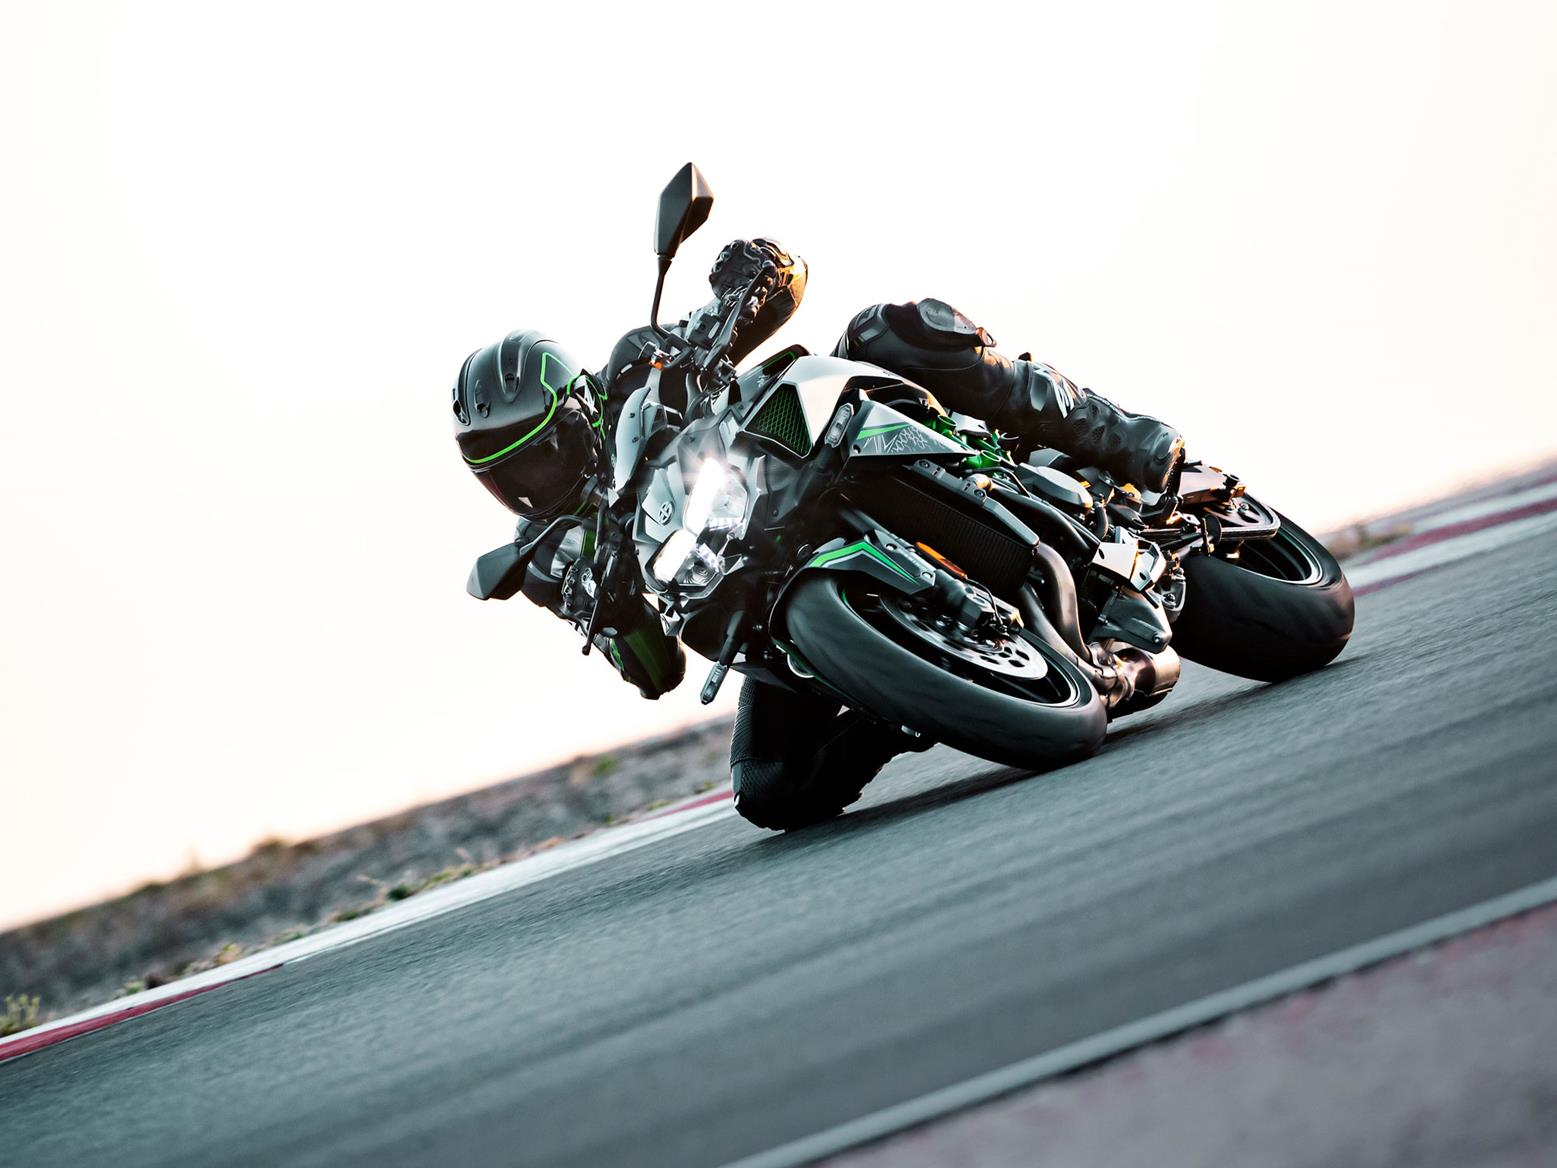 Kawasaki Z H2 on track